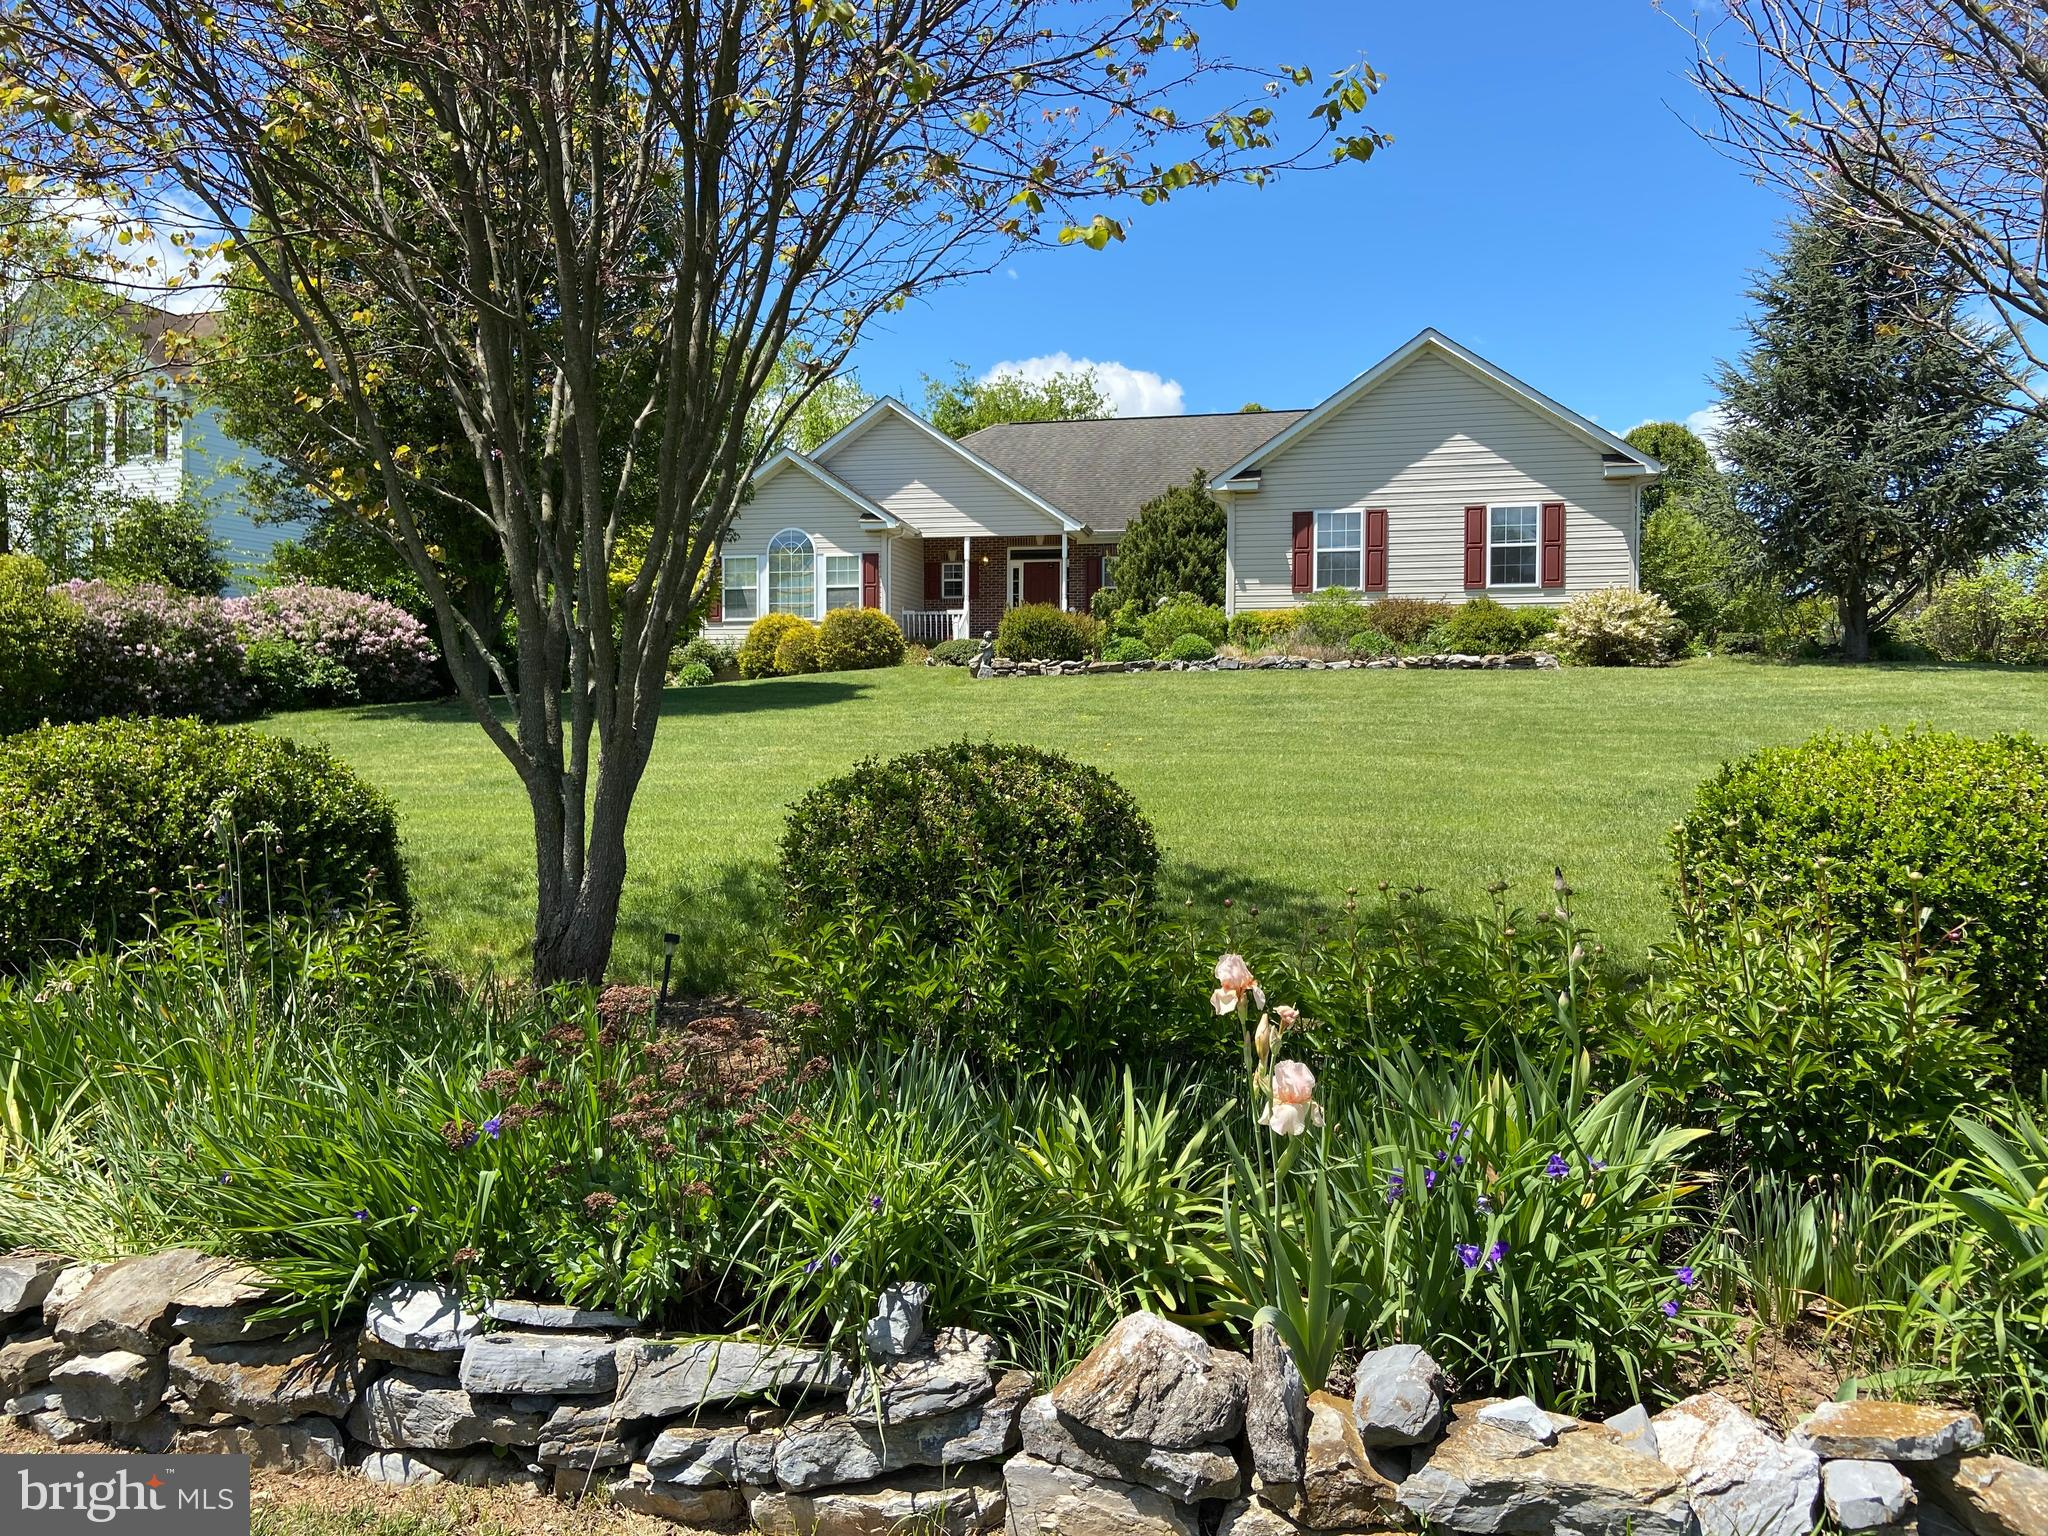 MOTIVATED SELLERS. $15000 price reduction. Ranchers are sure hard to come by,  so don't let this one go by!  Main level living offers 3 bedrooms but a 4th/office/den/br if desired. Family room has a stone gas fireplace and is open to dining and kitchen area for easy entertaining!  Large kitchen offers plenty of cabinets. Full, unfinished basement has many possibilities with full bathroom room already installed.  Master bath has double sinks, sep. shower, soaking tub and walkin closets. Deck plus a covered front porch and extra large sunroom.  If you love landscaping and flowers, this is a master gardners dream. Hundreds of periennals surround the yard edges. Yard art will not convey. THIS PROPERTY  IS PRICED TO BE BE SOLD AS IS.